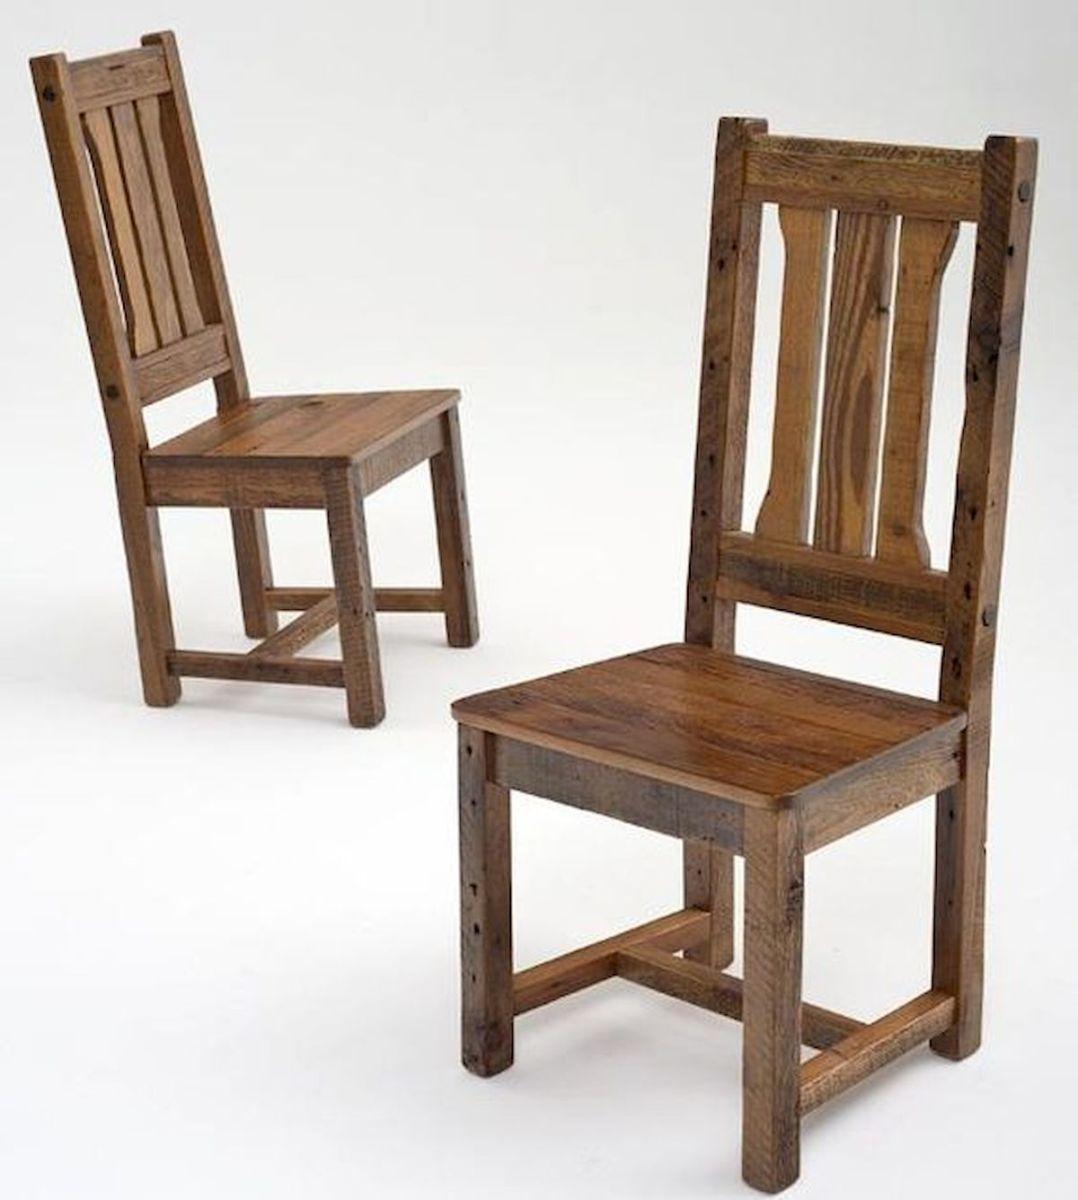 The Best Choice of Farmhouse Chairs (11)